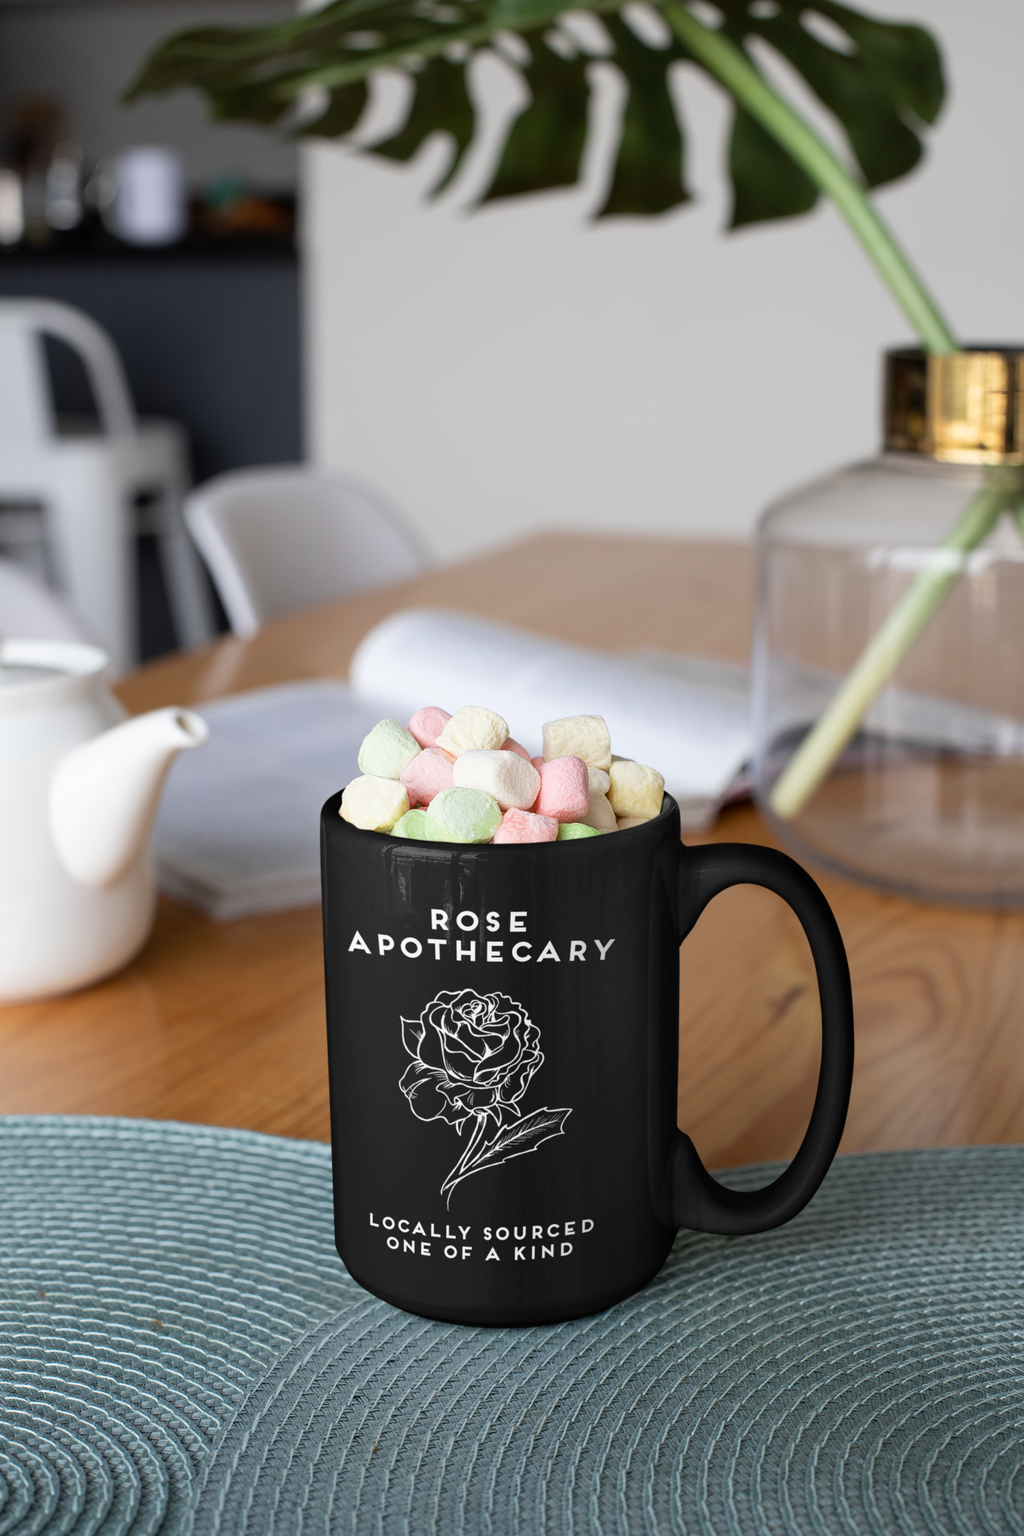 Rose Apothecary 15 oz Coffee Mug